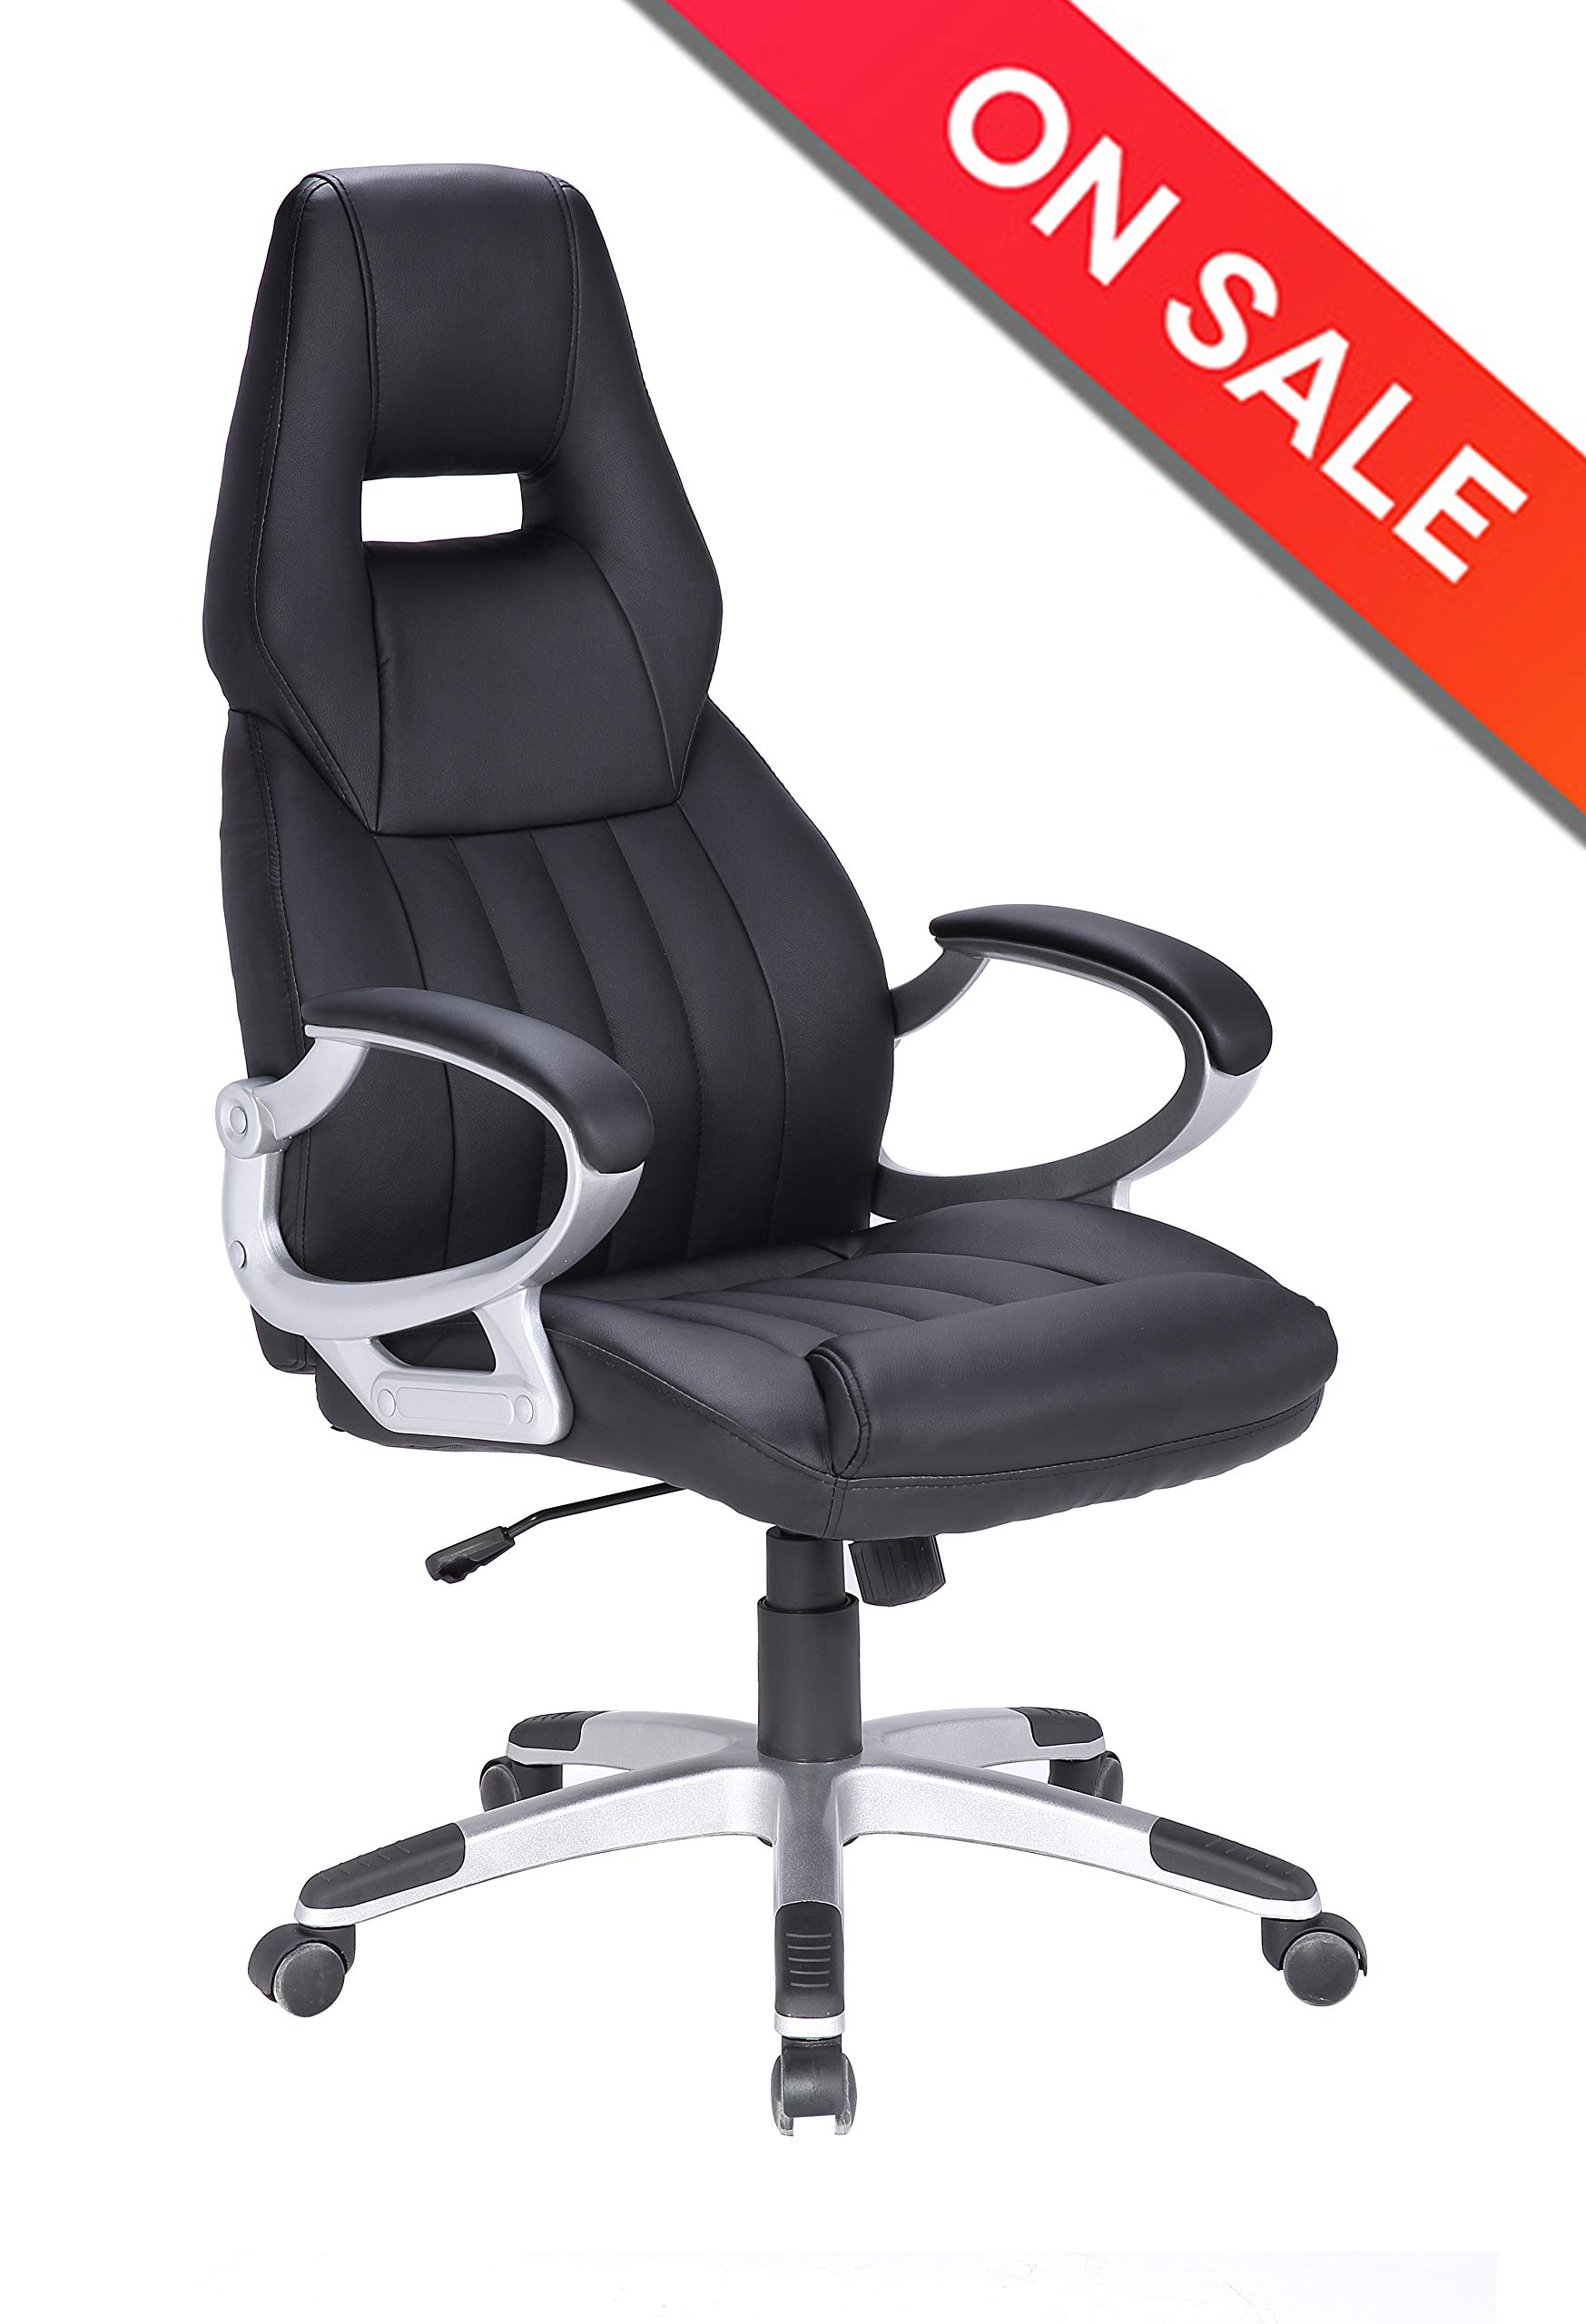 LCH Leather High Back Office Chair - Racing Style Computer Desk Chair with Adjustable Tilt Angle, Thick Padding for Comfort and Ergonomic Design for Lumbar Support by LCH